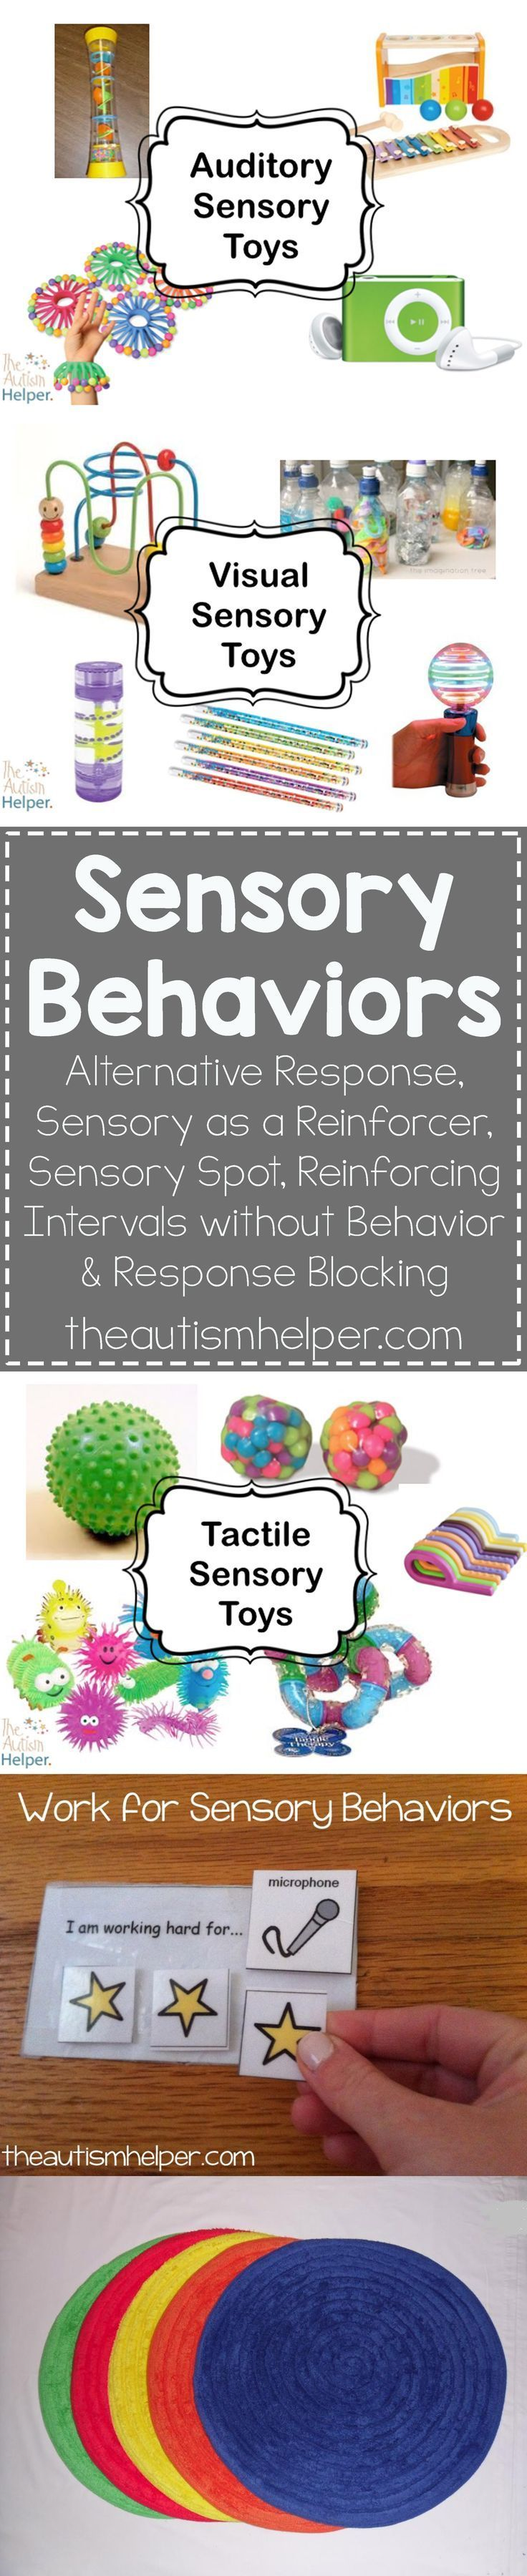 Classroom Ideas For Sensory Integration : Best images about social stories on pinterest